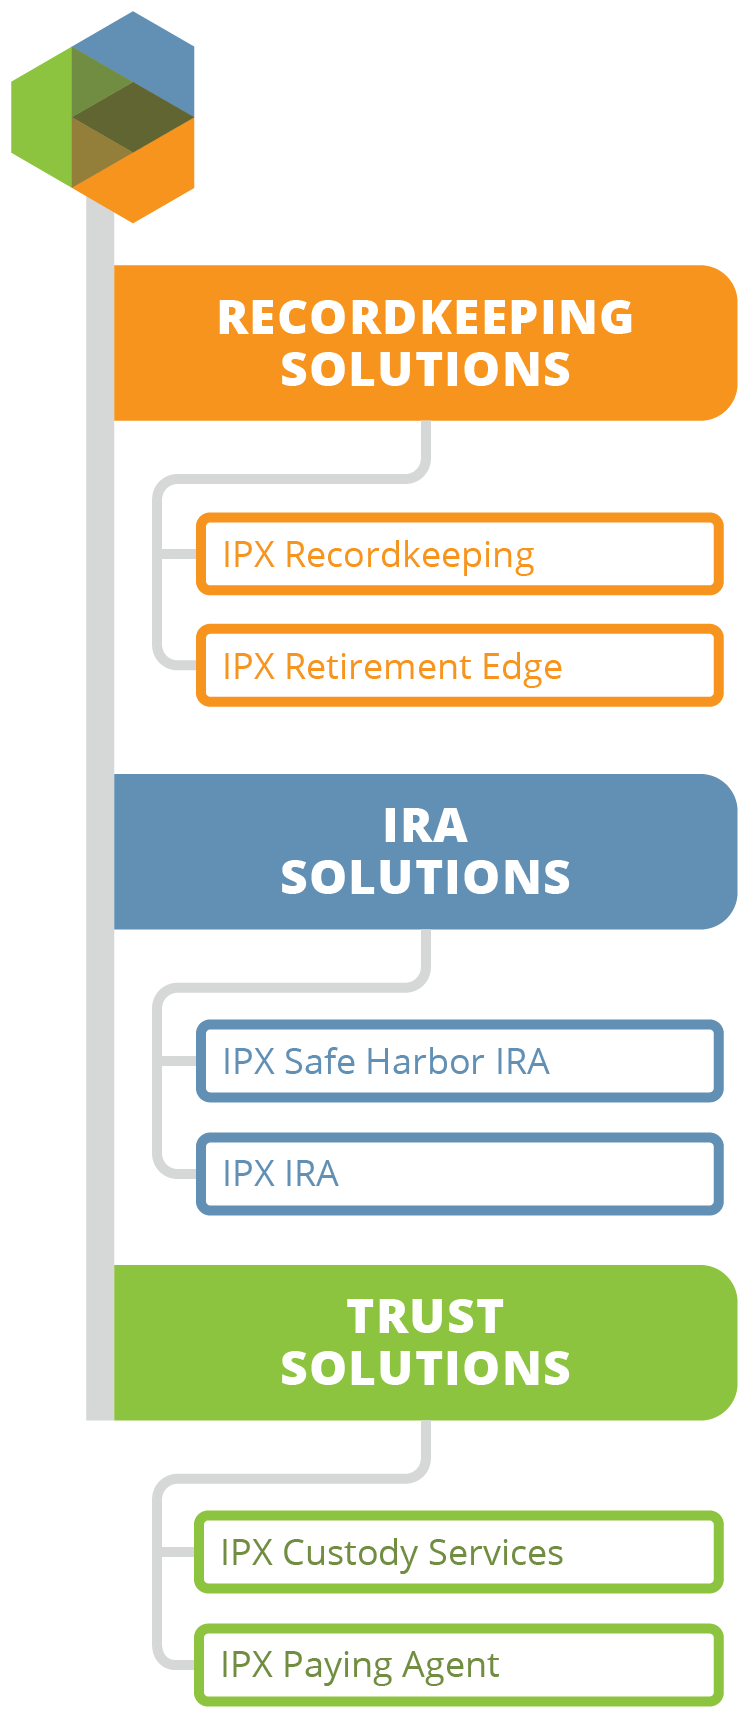 Graphic listing key IPX services. Recordkeeping solutions include recordkeeping and IPX Retirement Edge. IRA solutions include Safe Harbor IRAs and IPX IRAs. Trust solutions include custody services and paying agent services.